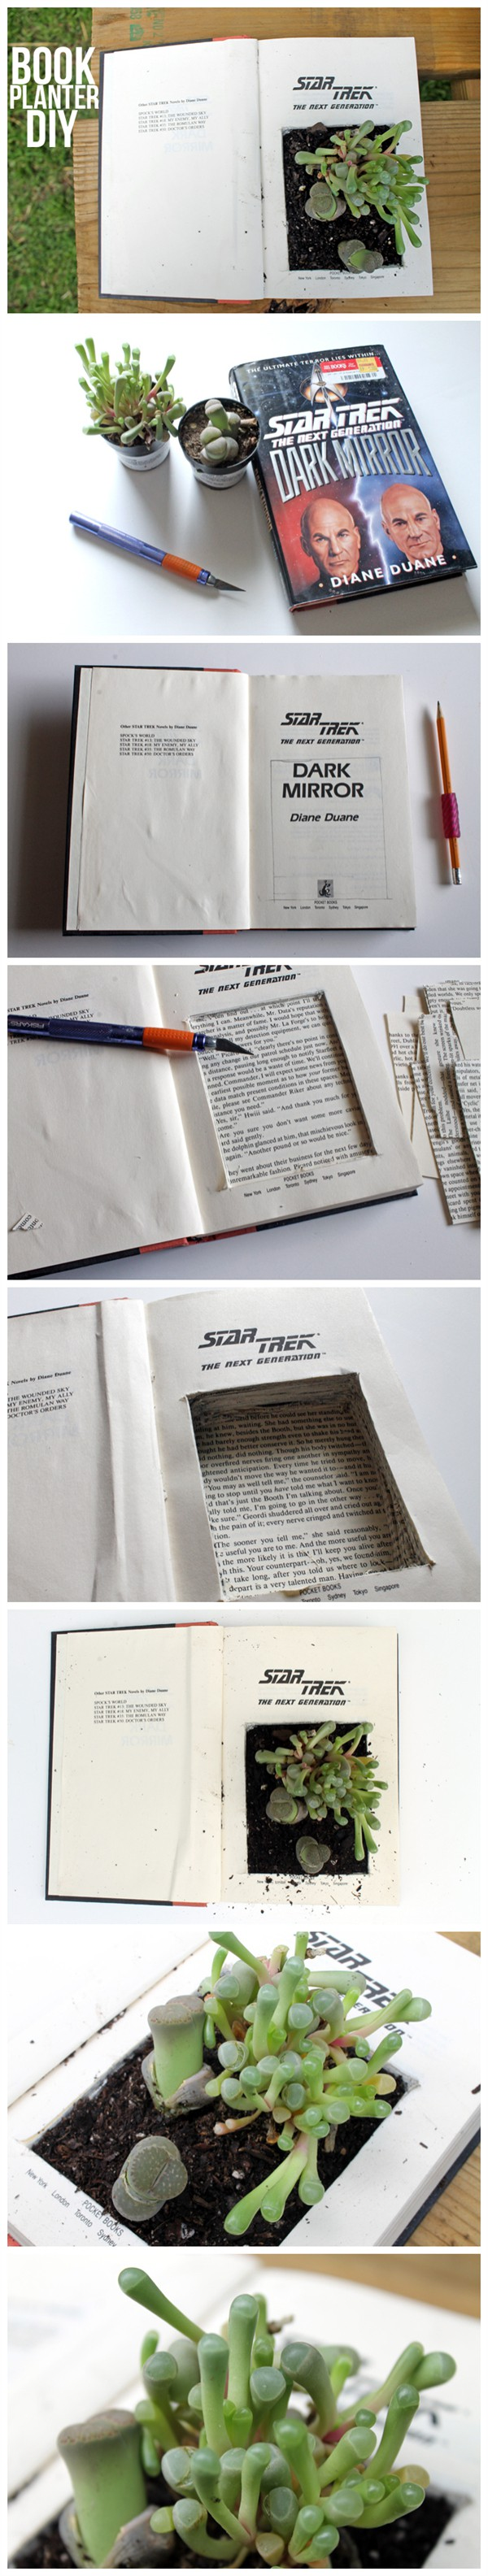 Diy Recycled Book Planter